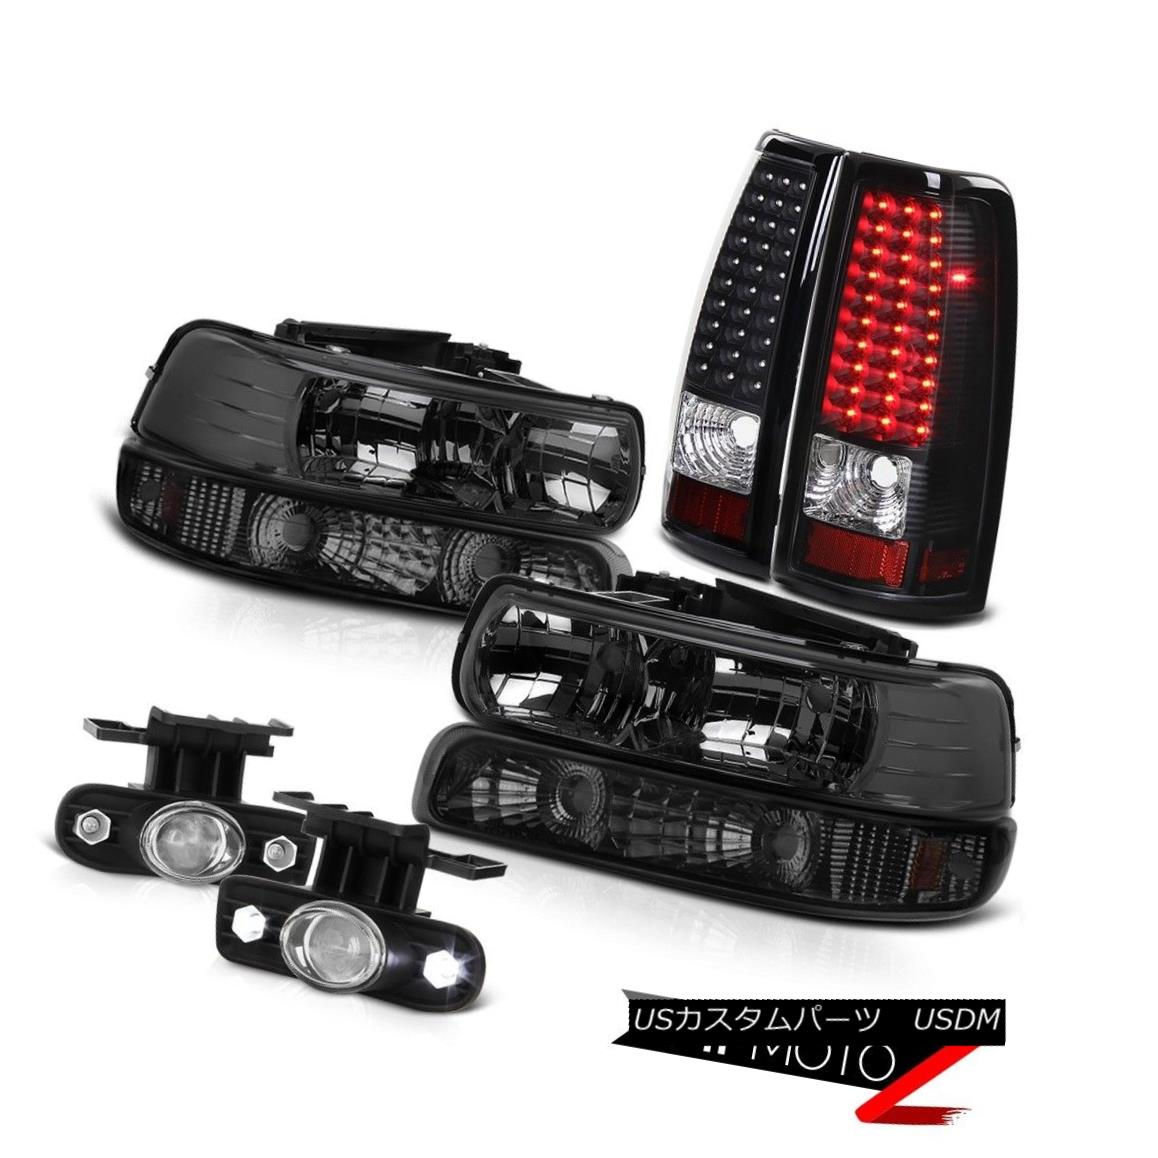 ヘッドライト 99 00 01 02 Silverado Dark Smoke Headlight Bumper Lights Tail SMD DRL Foglights 99 00 01 02 SilveradoダークスモークヘッドライトバンパーライトテールSMD DRL Foglights